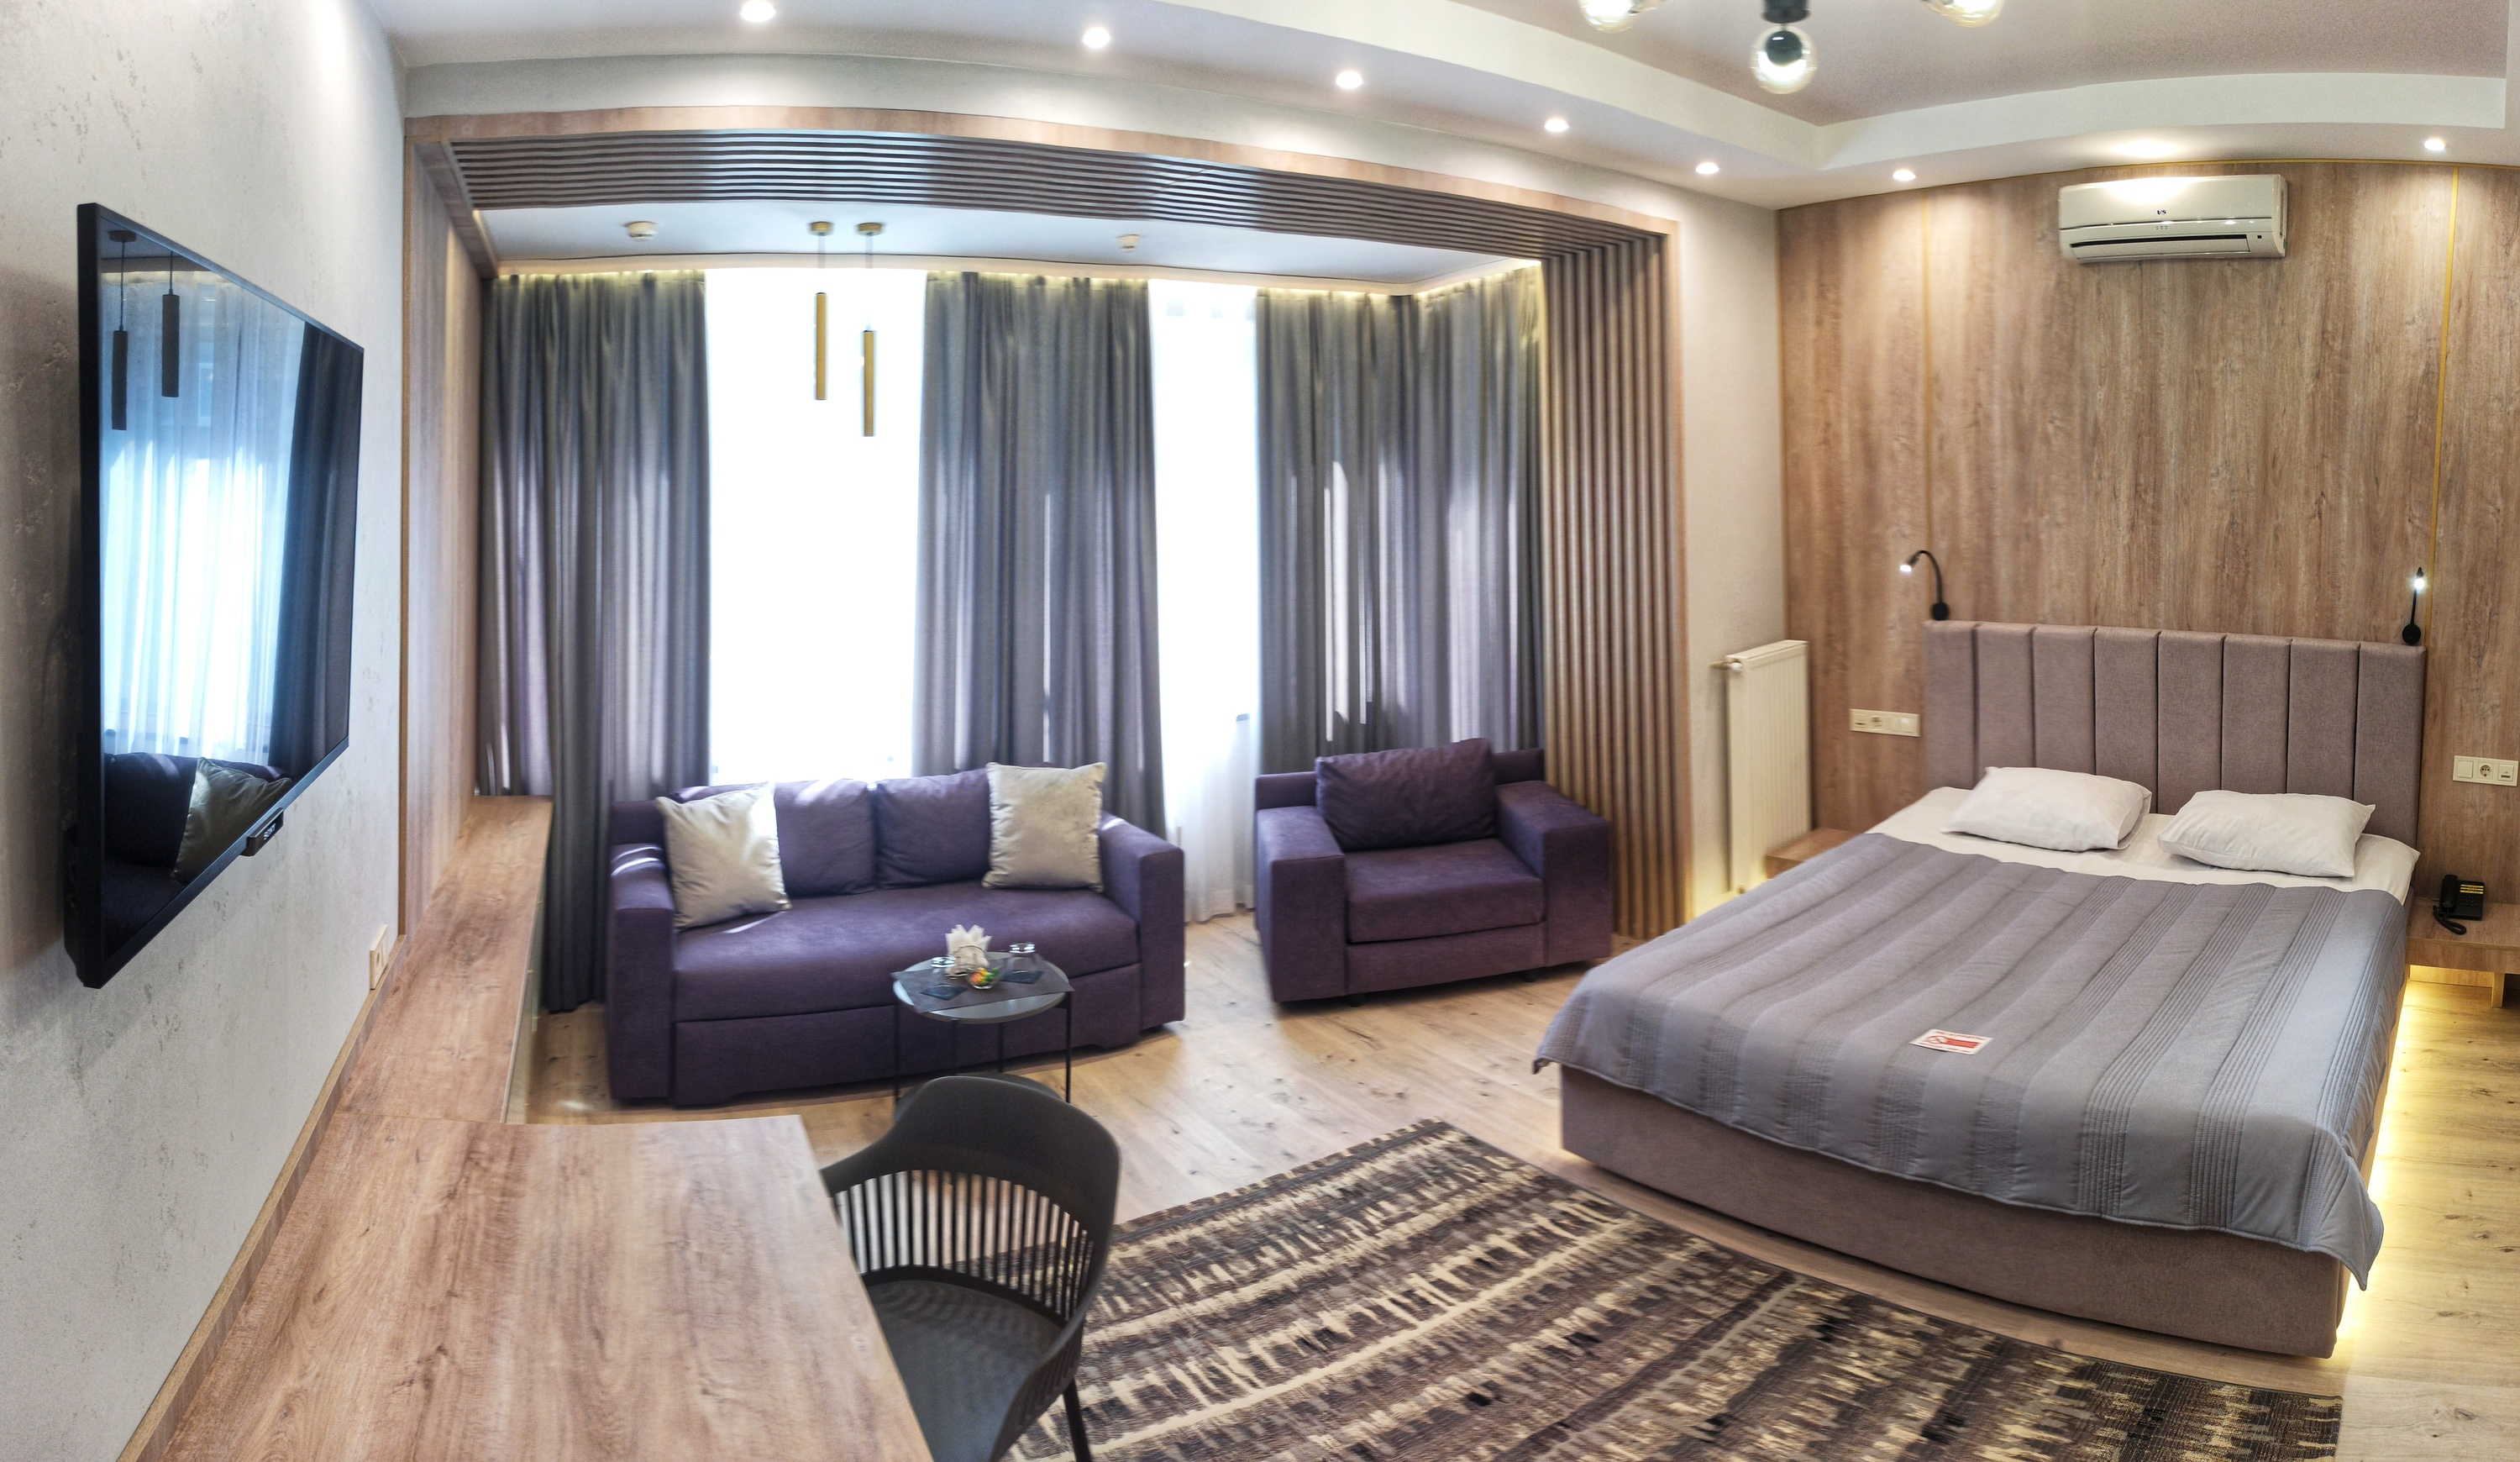 The suite at the Hotel Viva